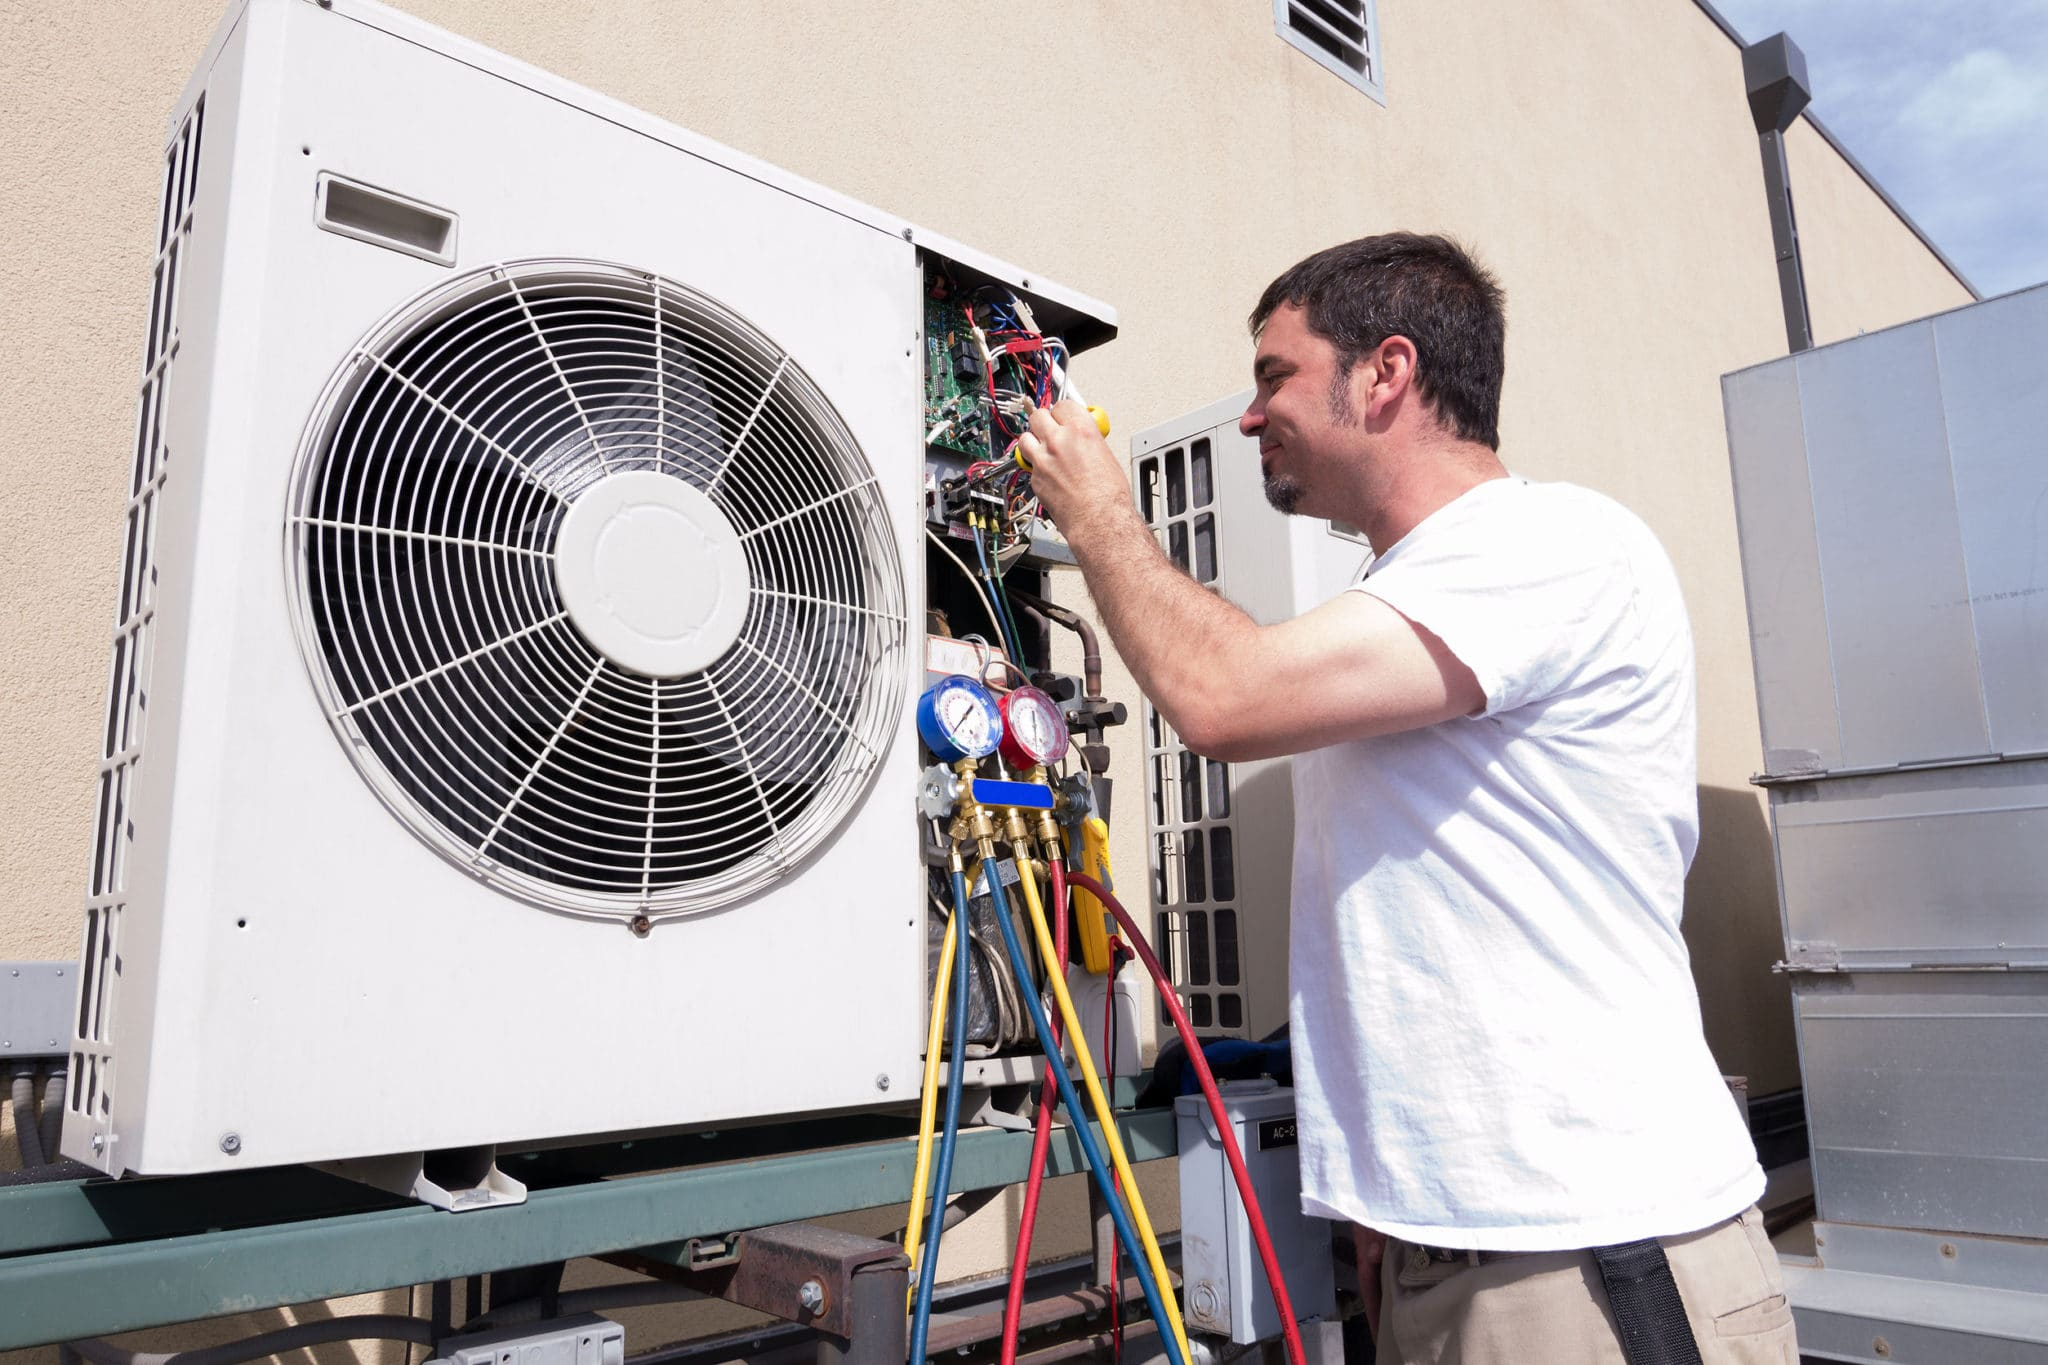 Maintenance work on air conditioners